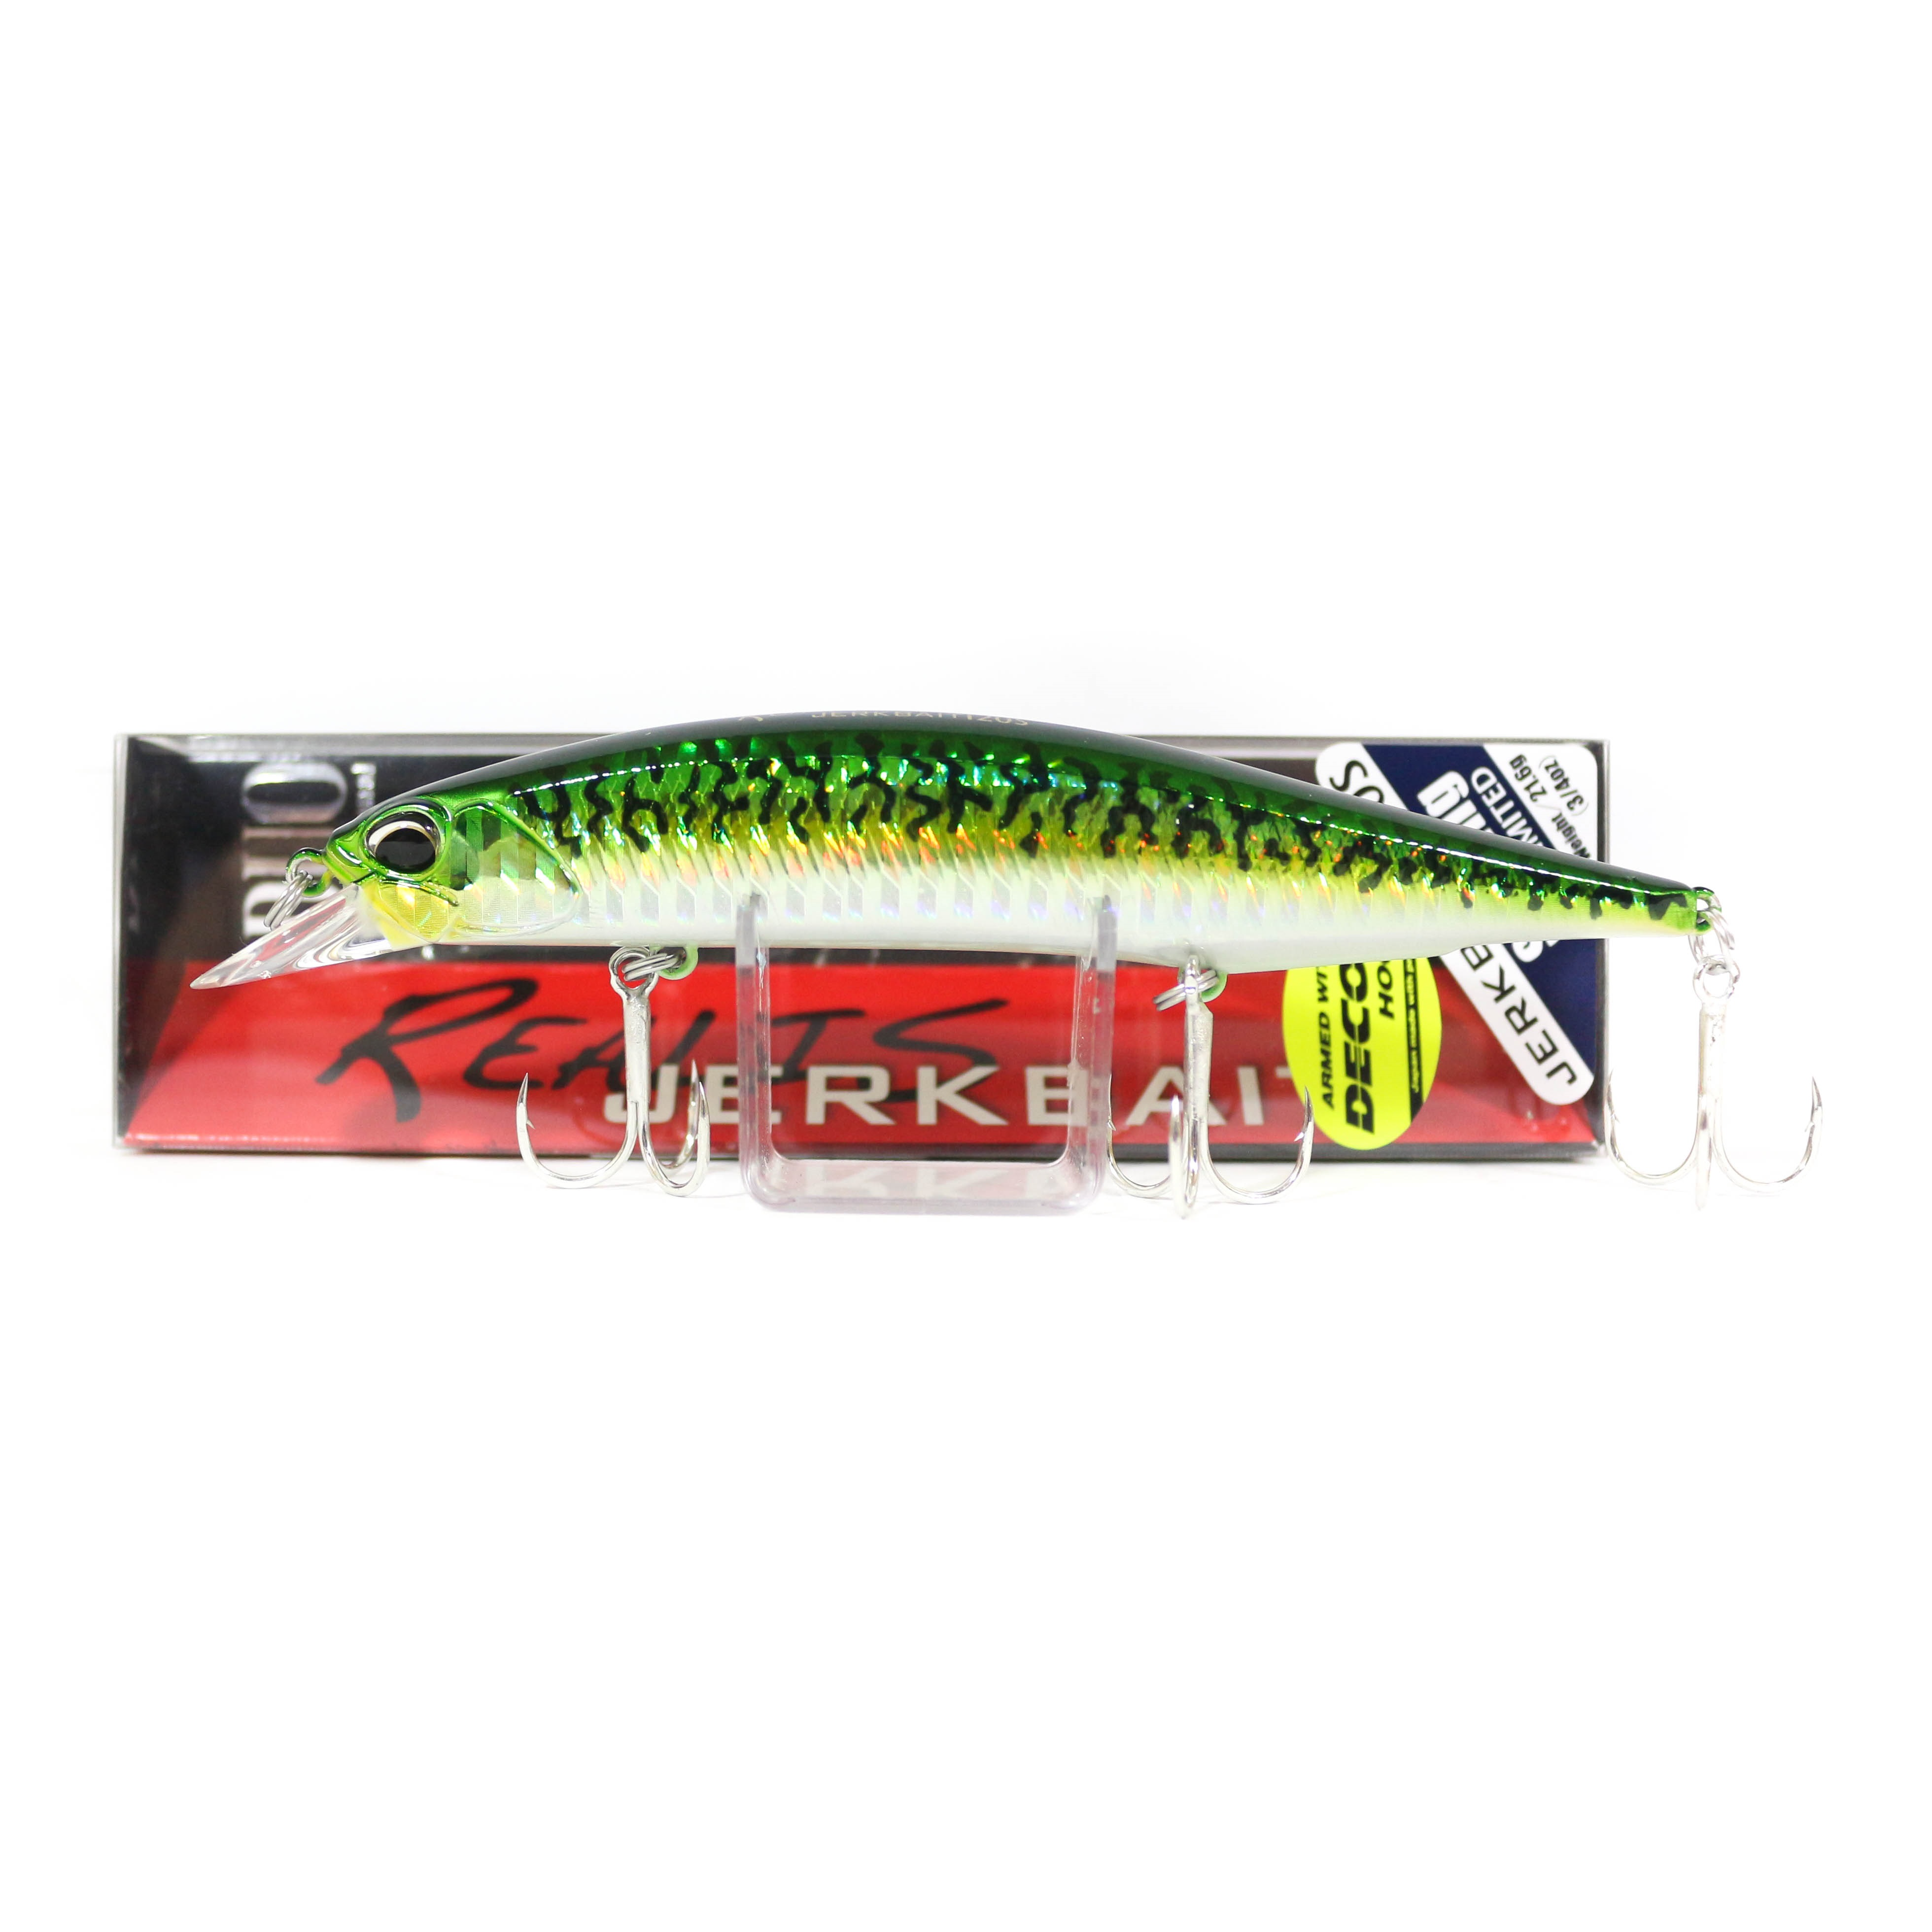 Duo Realis Jerkbait 120S SW Sinking Lure AHA0263 (6827)